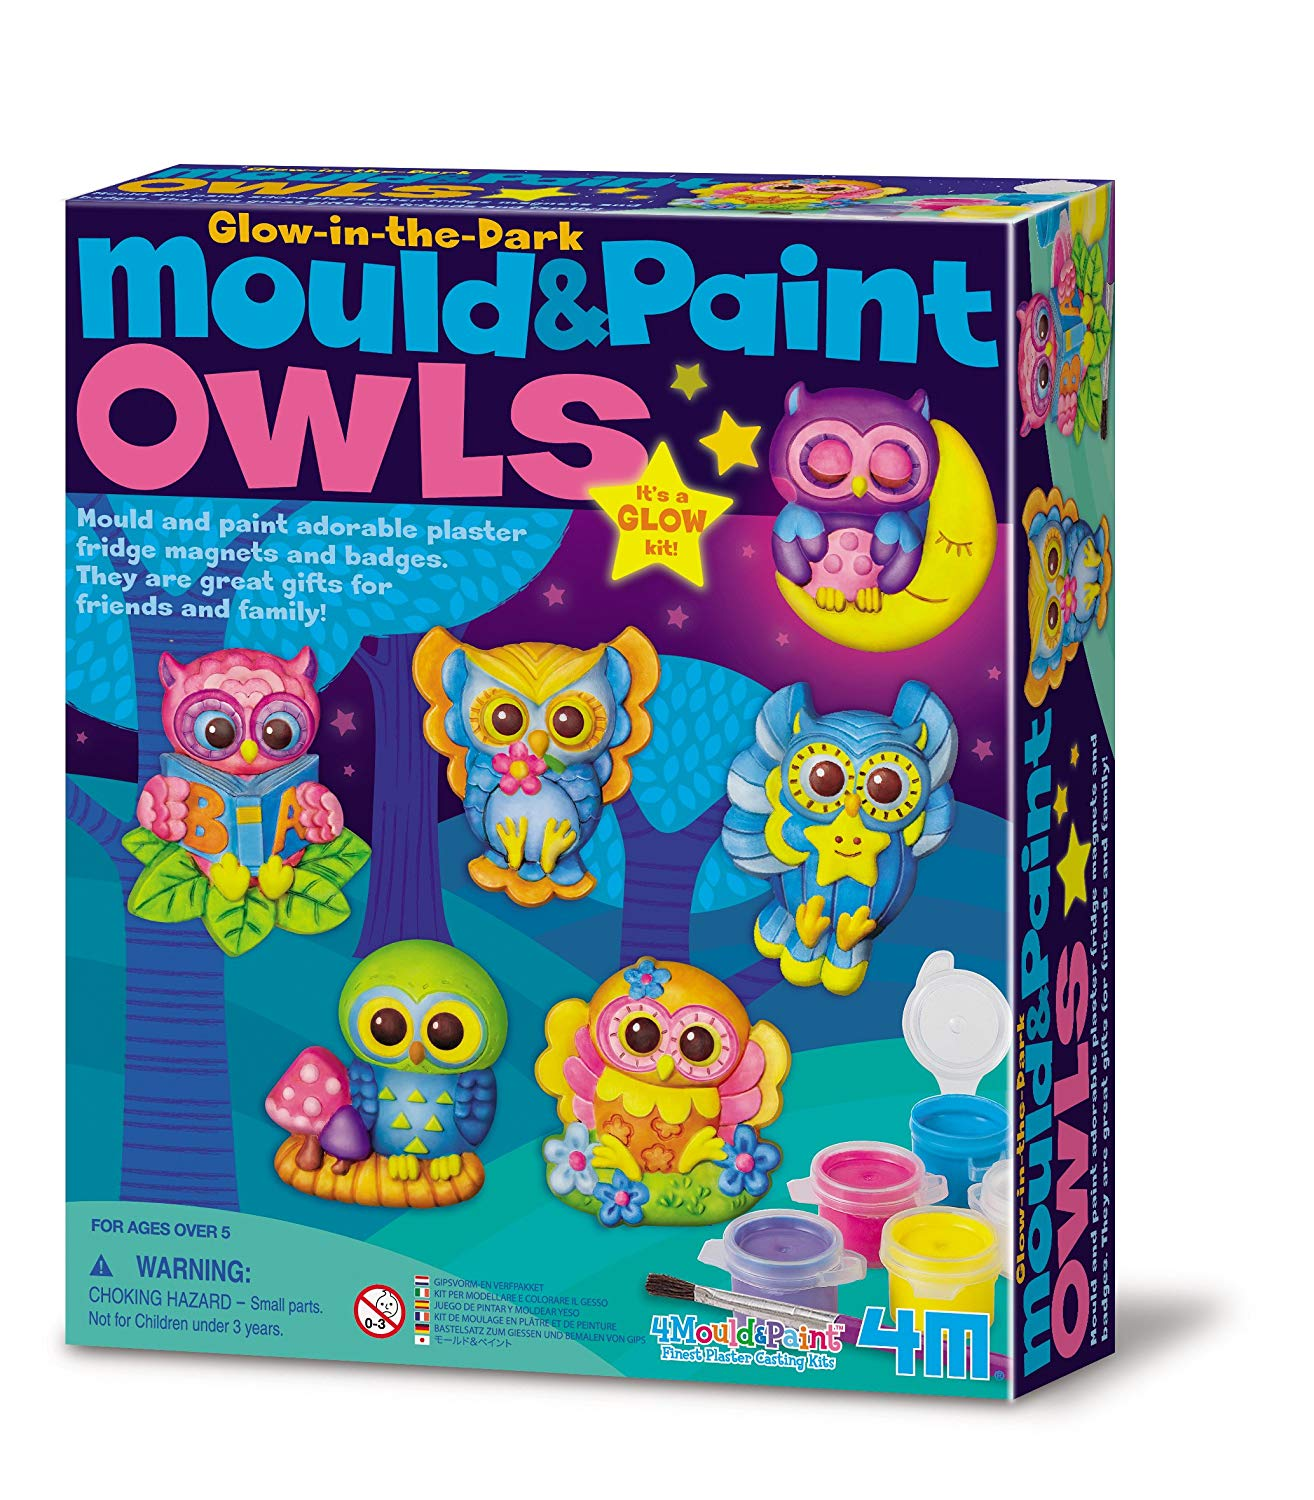 Mould & Paint - Glow Owls